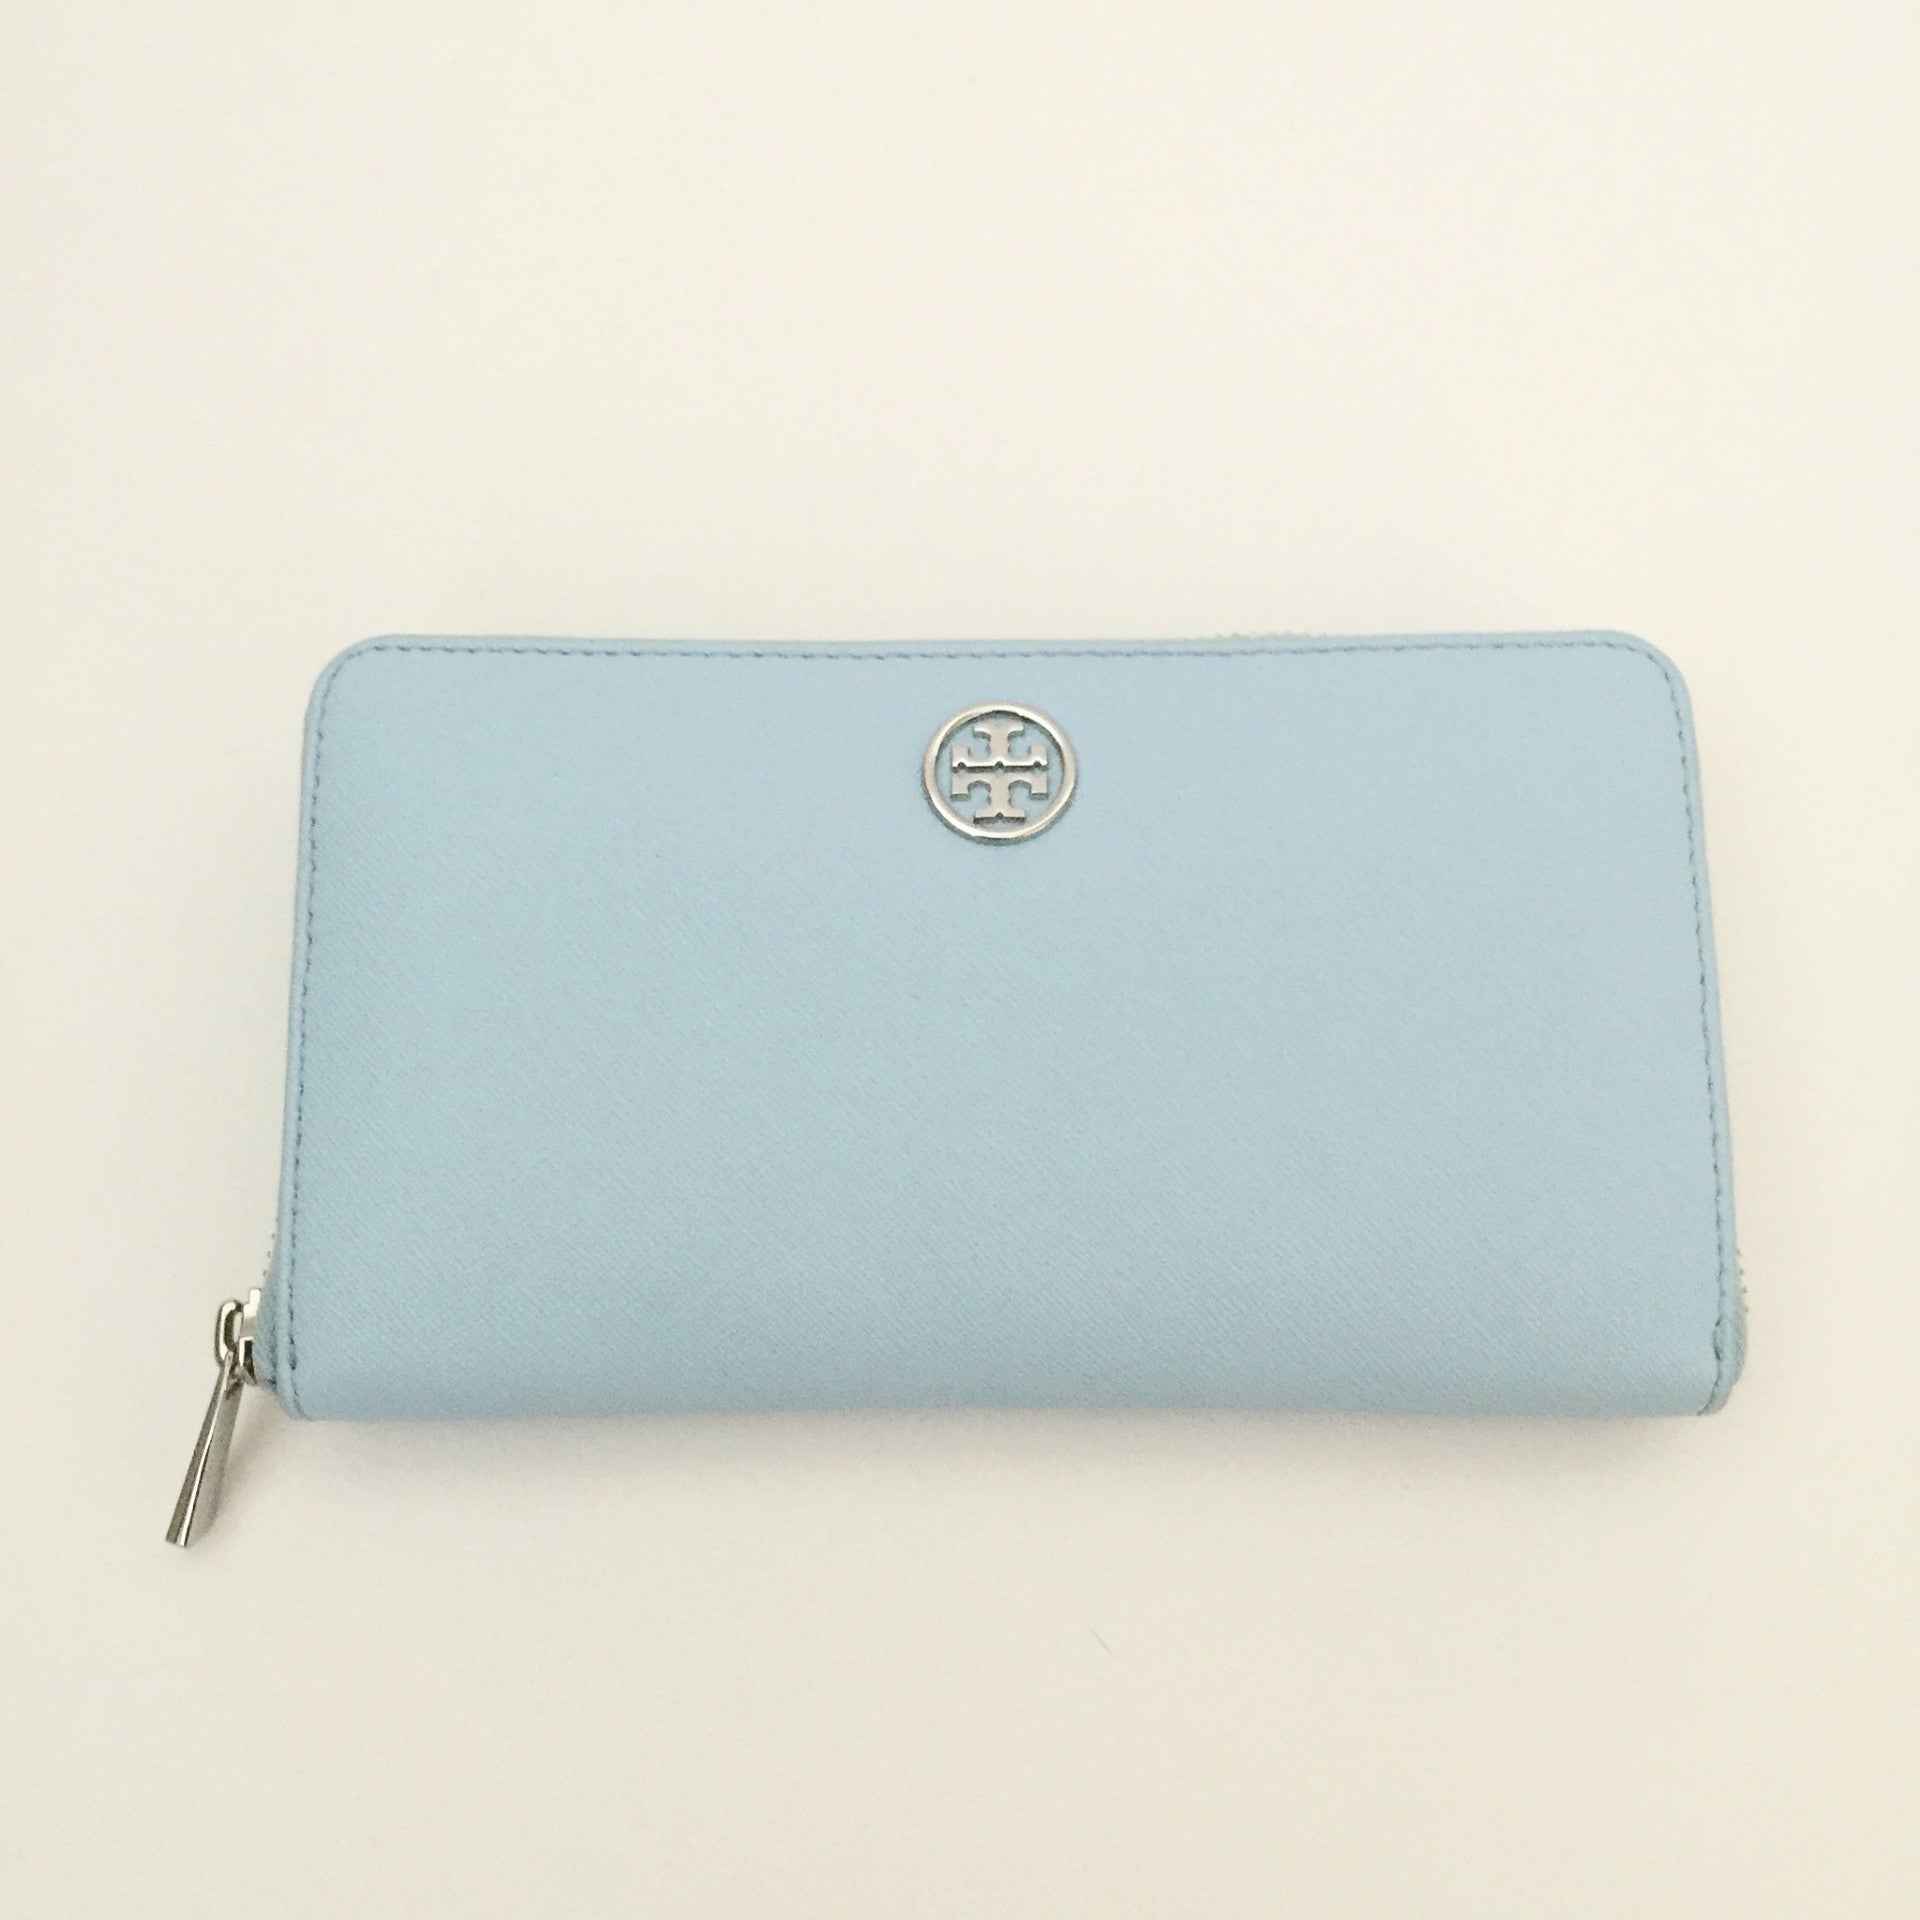 Authentic TORY BURCH Continental Zip Around Wallet